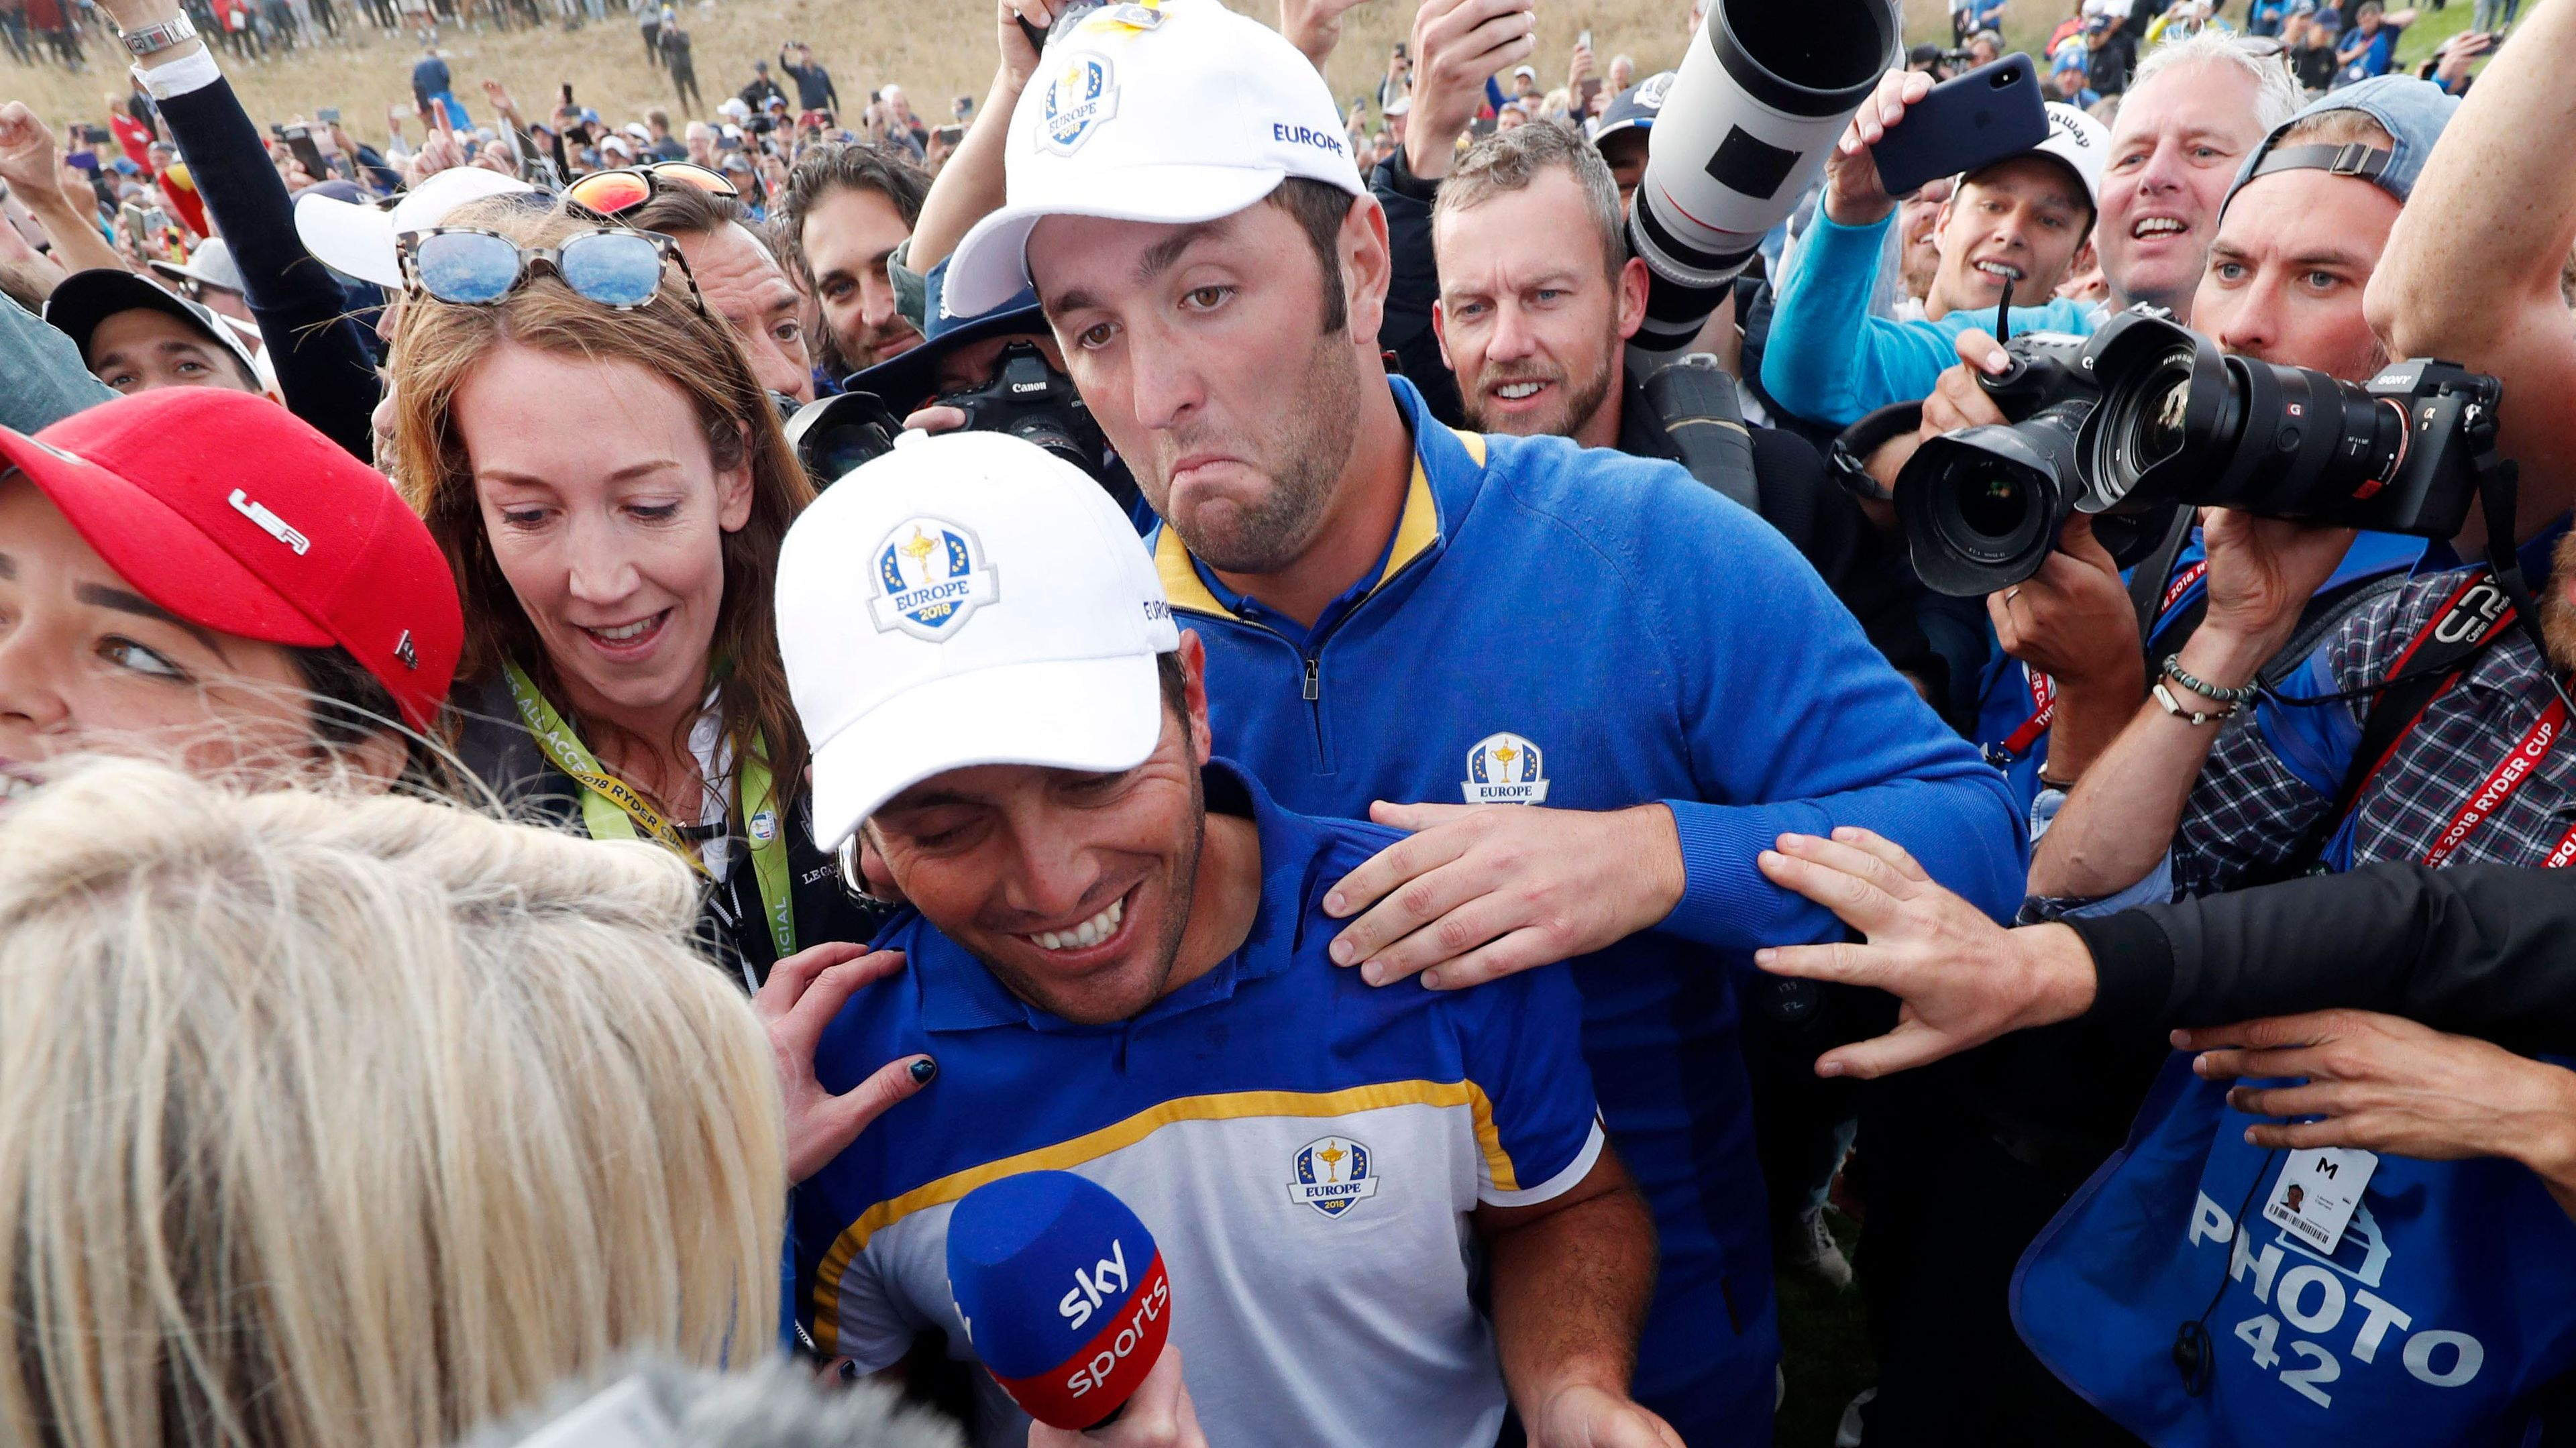 Francesco Molinari and John Rahm celebrate.